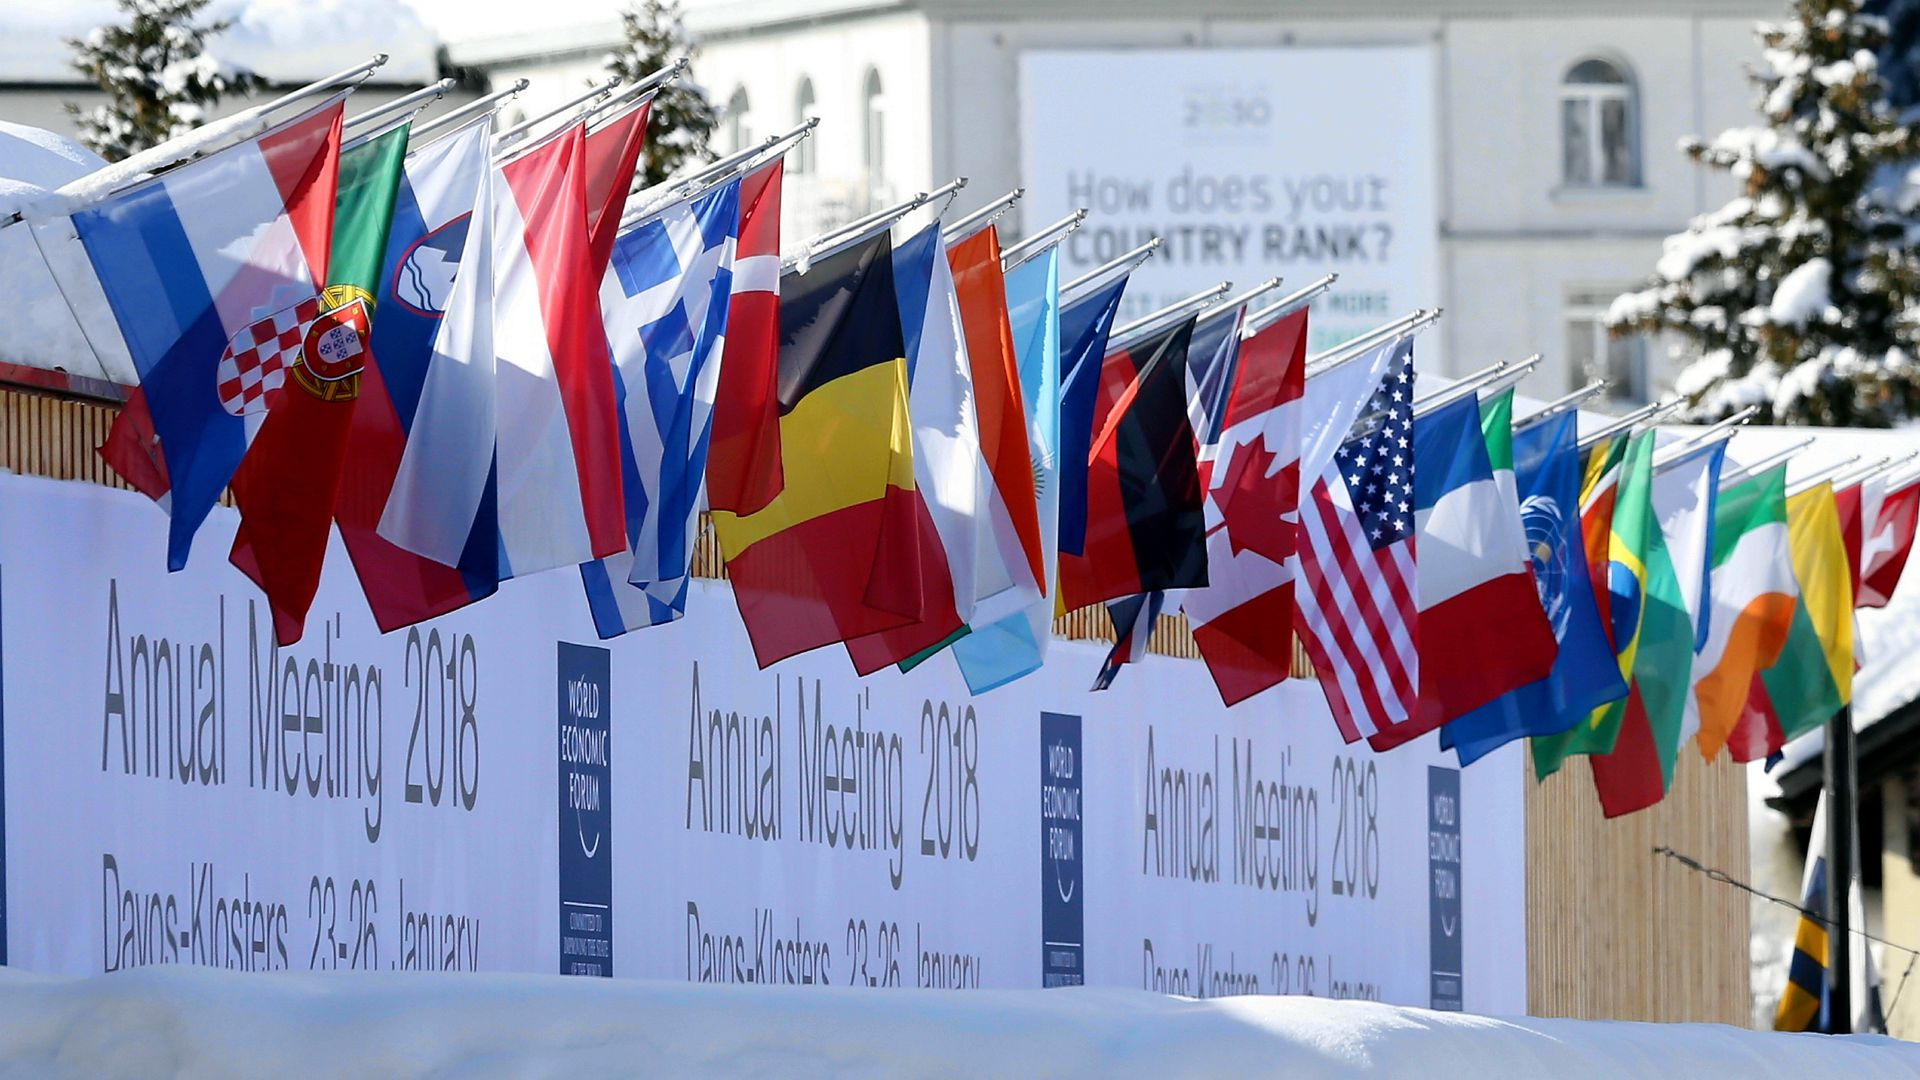 Line of flags for countries attending the 2018 World Economic Forum in Davos, Switzerland